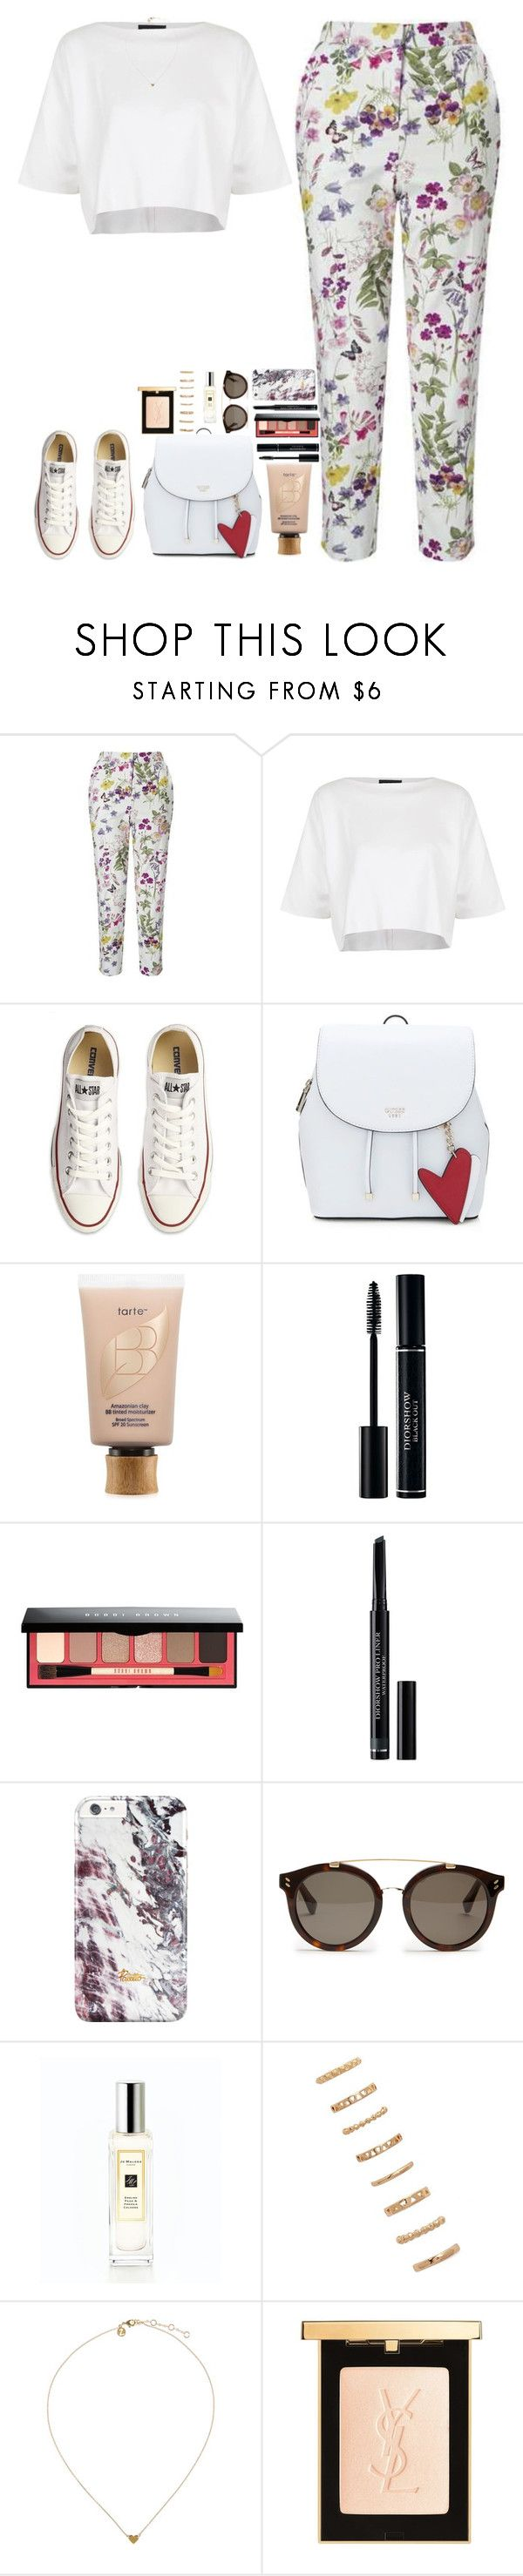 """""""British Summer Time fest."""" by whisperofregret ❤ liked on Polyvore featuring Miss Selfridge, Topshop, Converse, tarte, Bobbi Brown Cosmetics, Christian Dior, STELLA McCARTNEY, Jo Malone, Forever 21 and Yves Saint Laurent"""